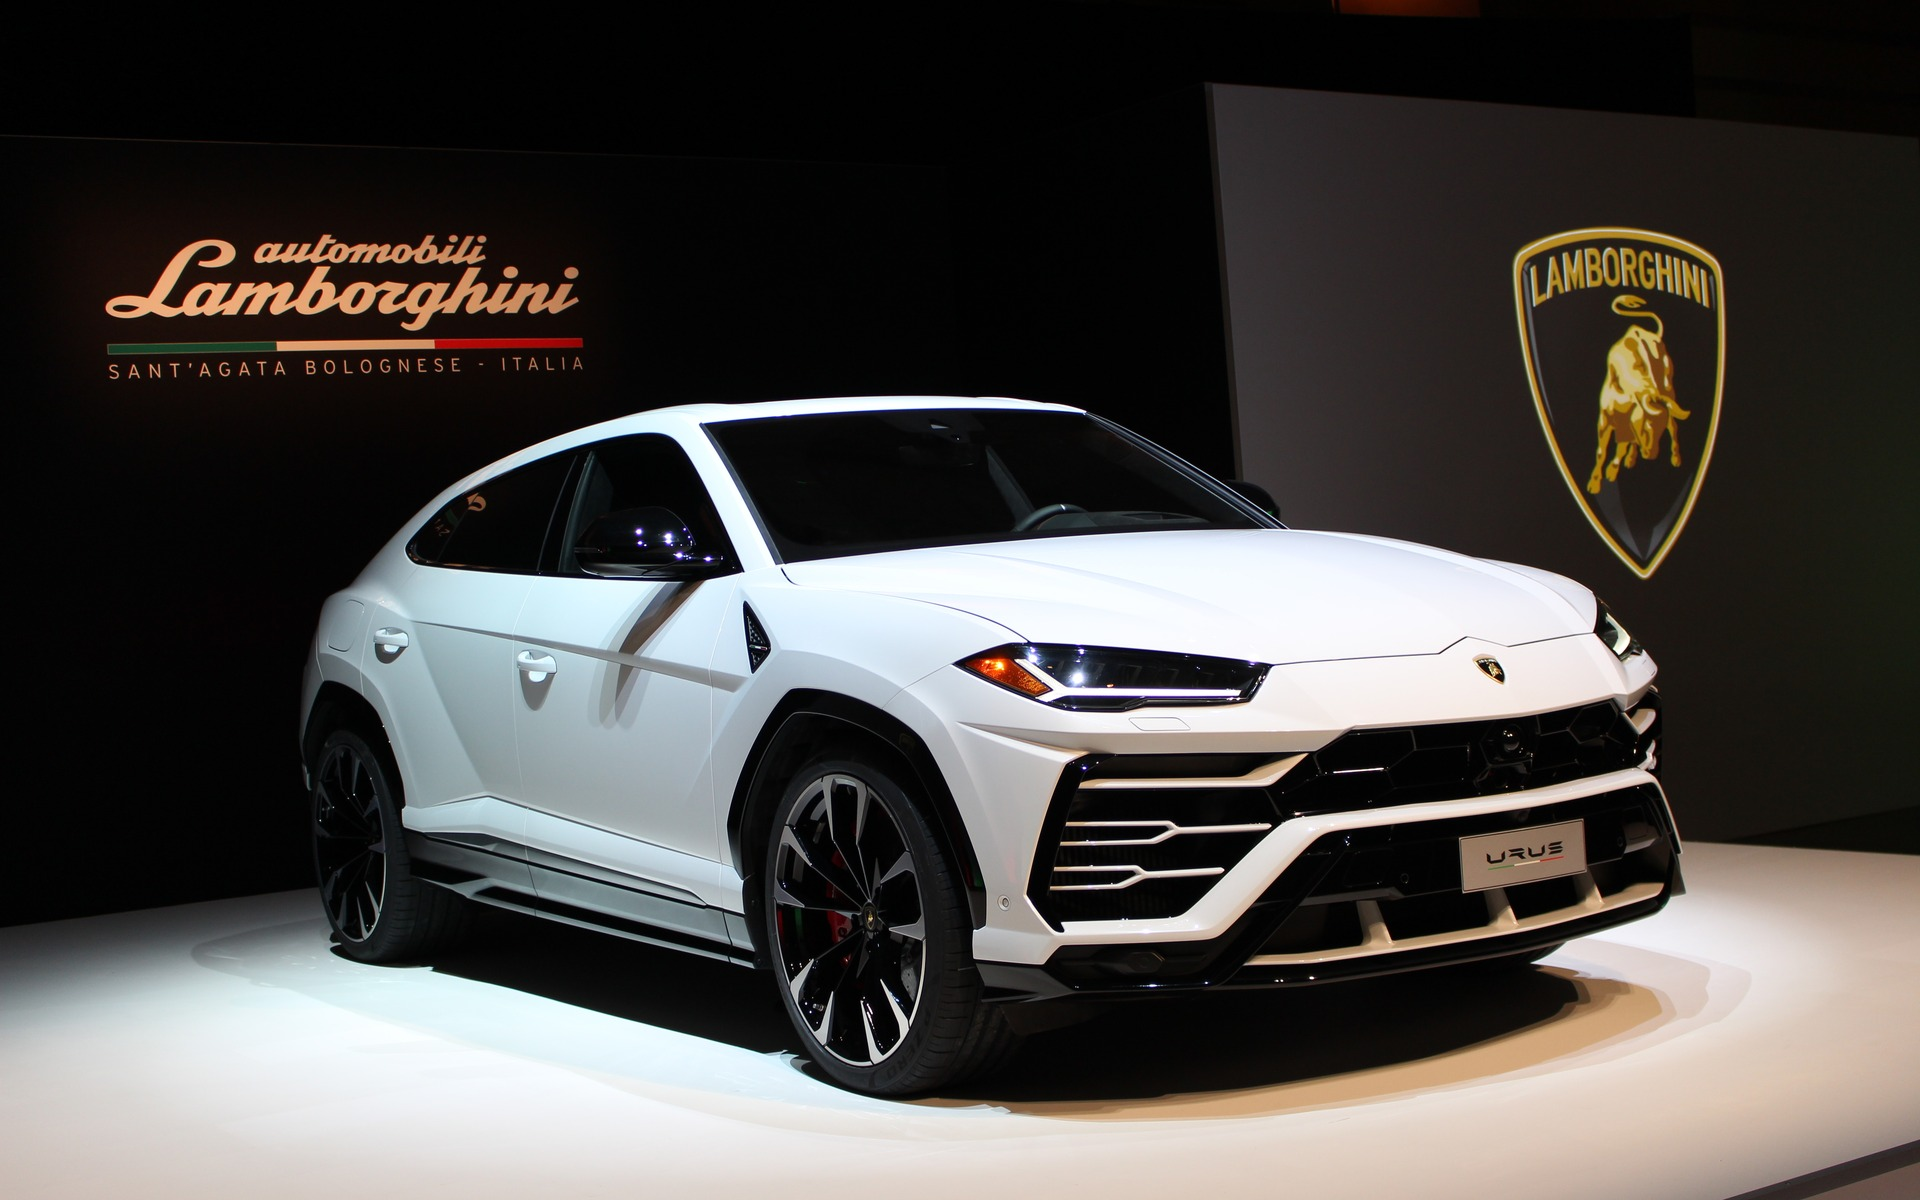 2019 Lamborghini Urus Preview - The Car Guide